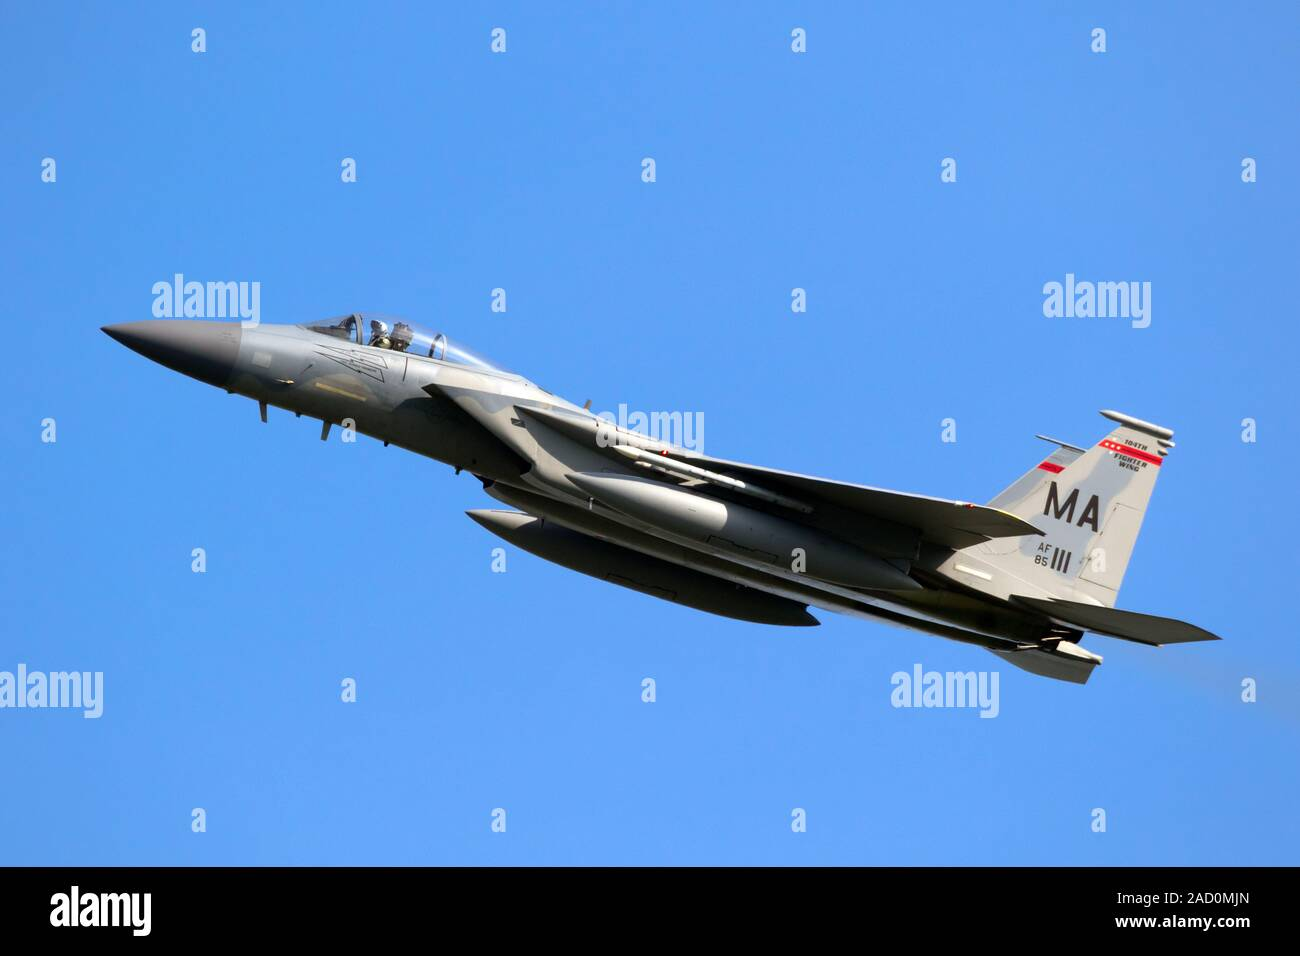 LEEUWARDEN, NETHERLANDS - APR 19, 2018: US Air Force F-15 Eagle fighter jet aircraft from the Massachusetts Air National Guard taking off during exerc Stock Photo